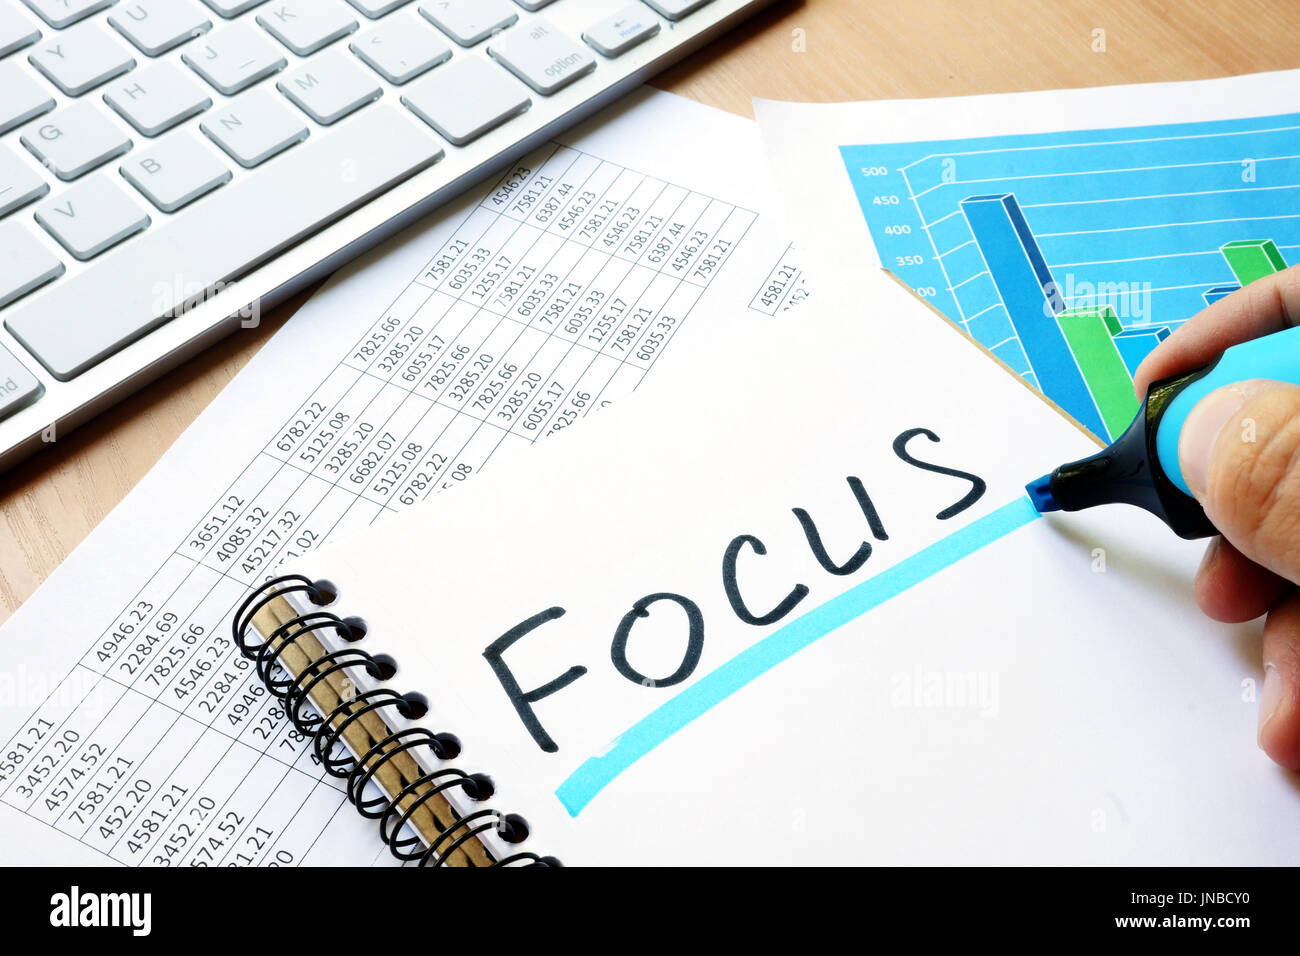 Focus written in a note. Business concept. - Stock Image